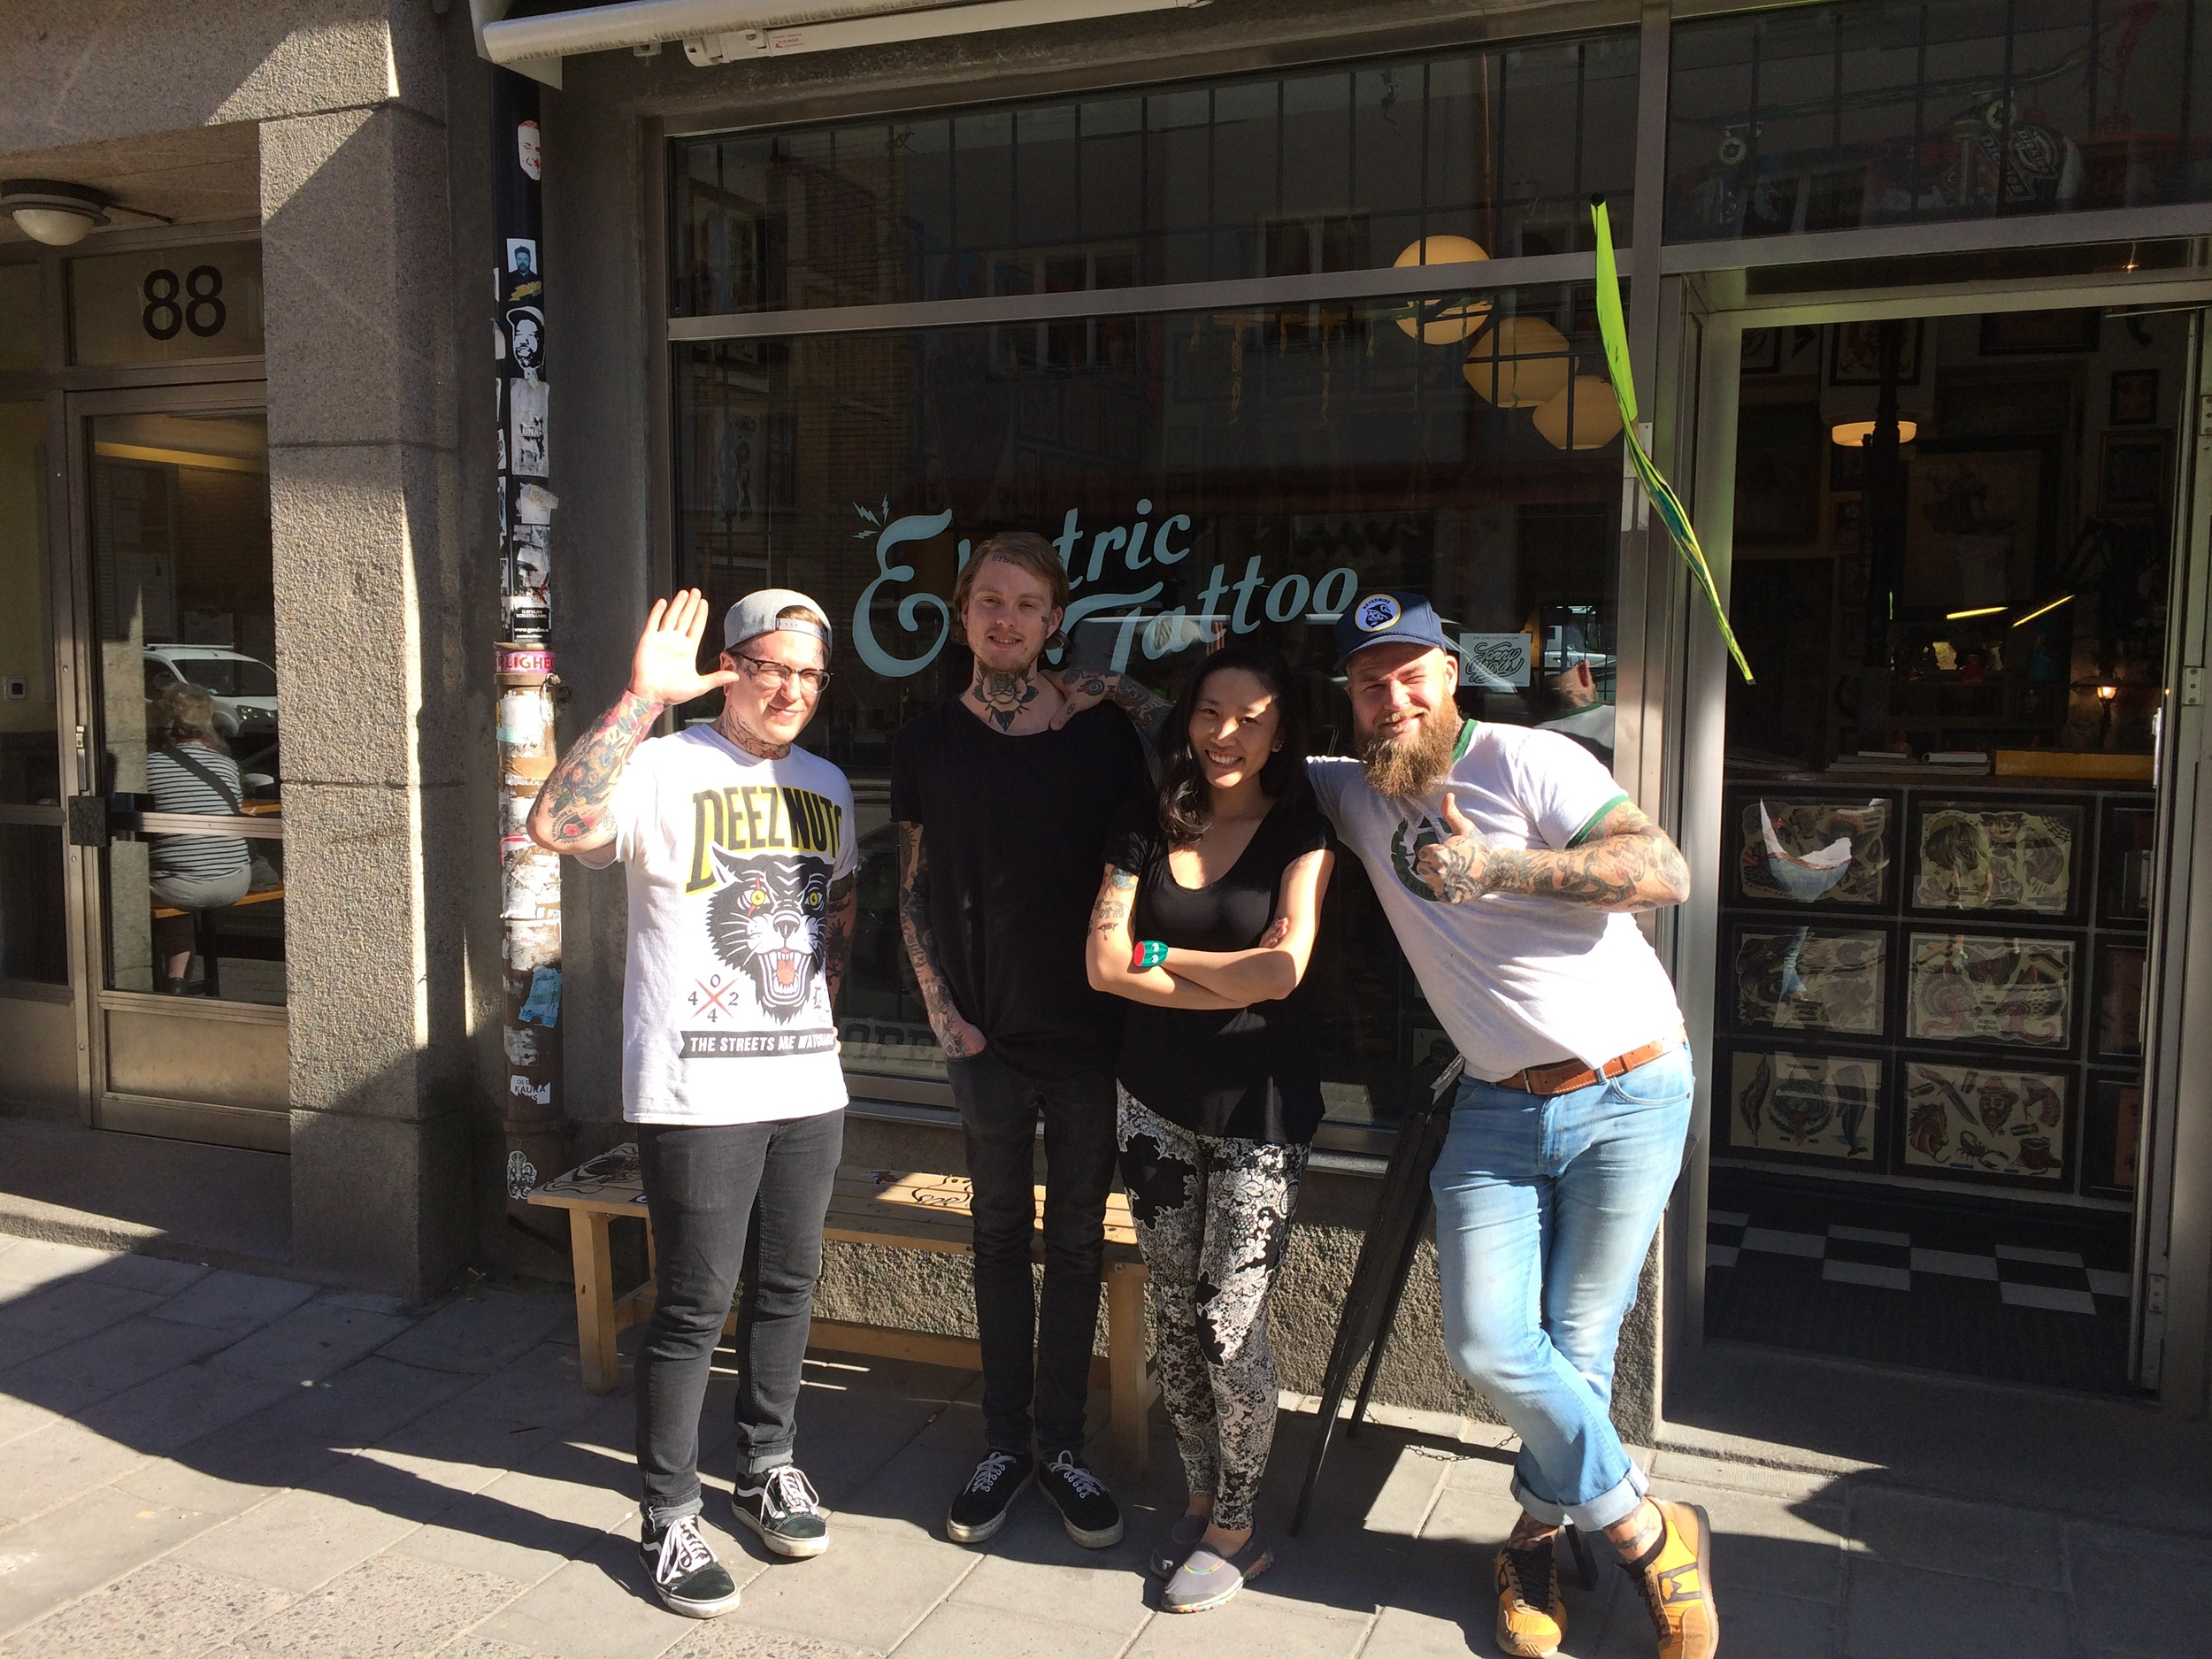 Super nice people at Electric Tattoo, Stockholm. Jayers did a short guest spot there on 10-11June 2015 and is pretty sure she will return for a longer spot in the future because they are soawesome!!